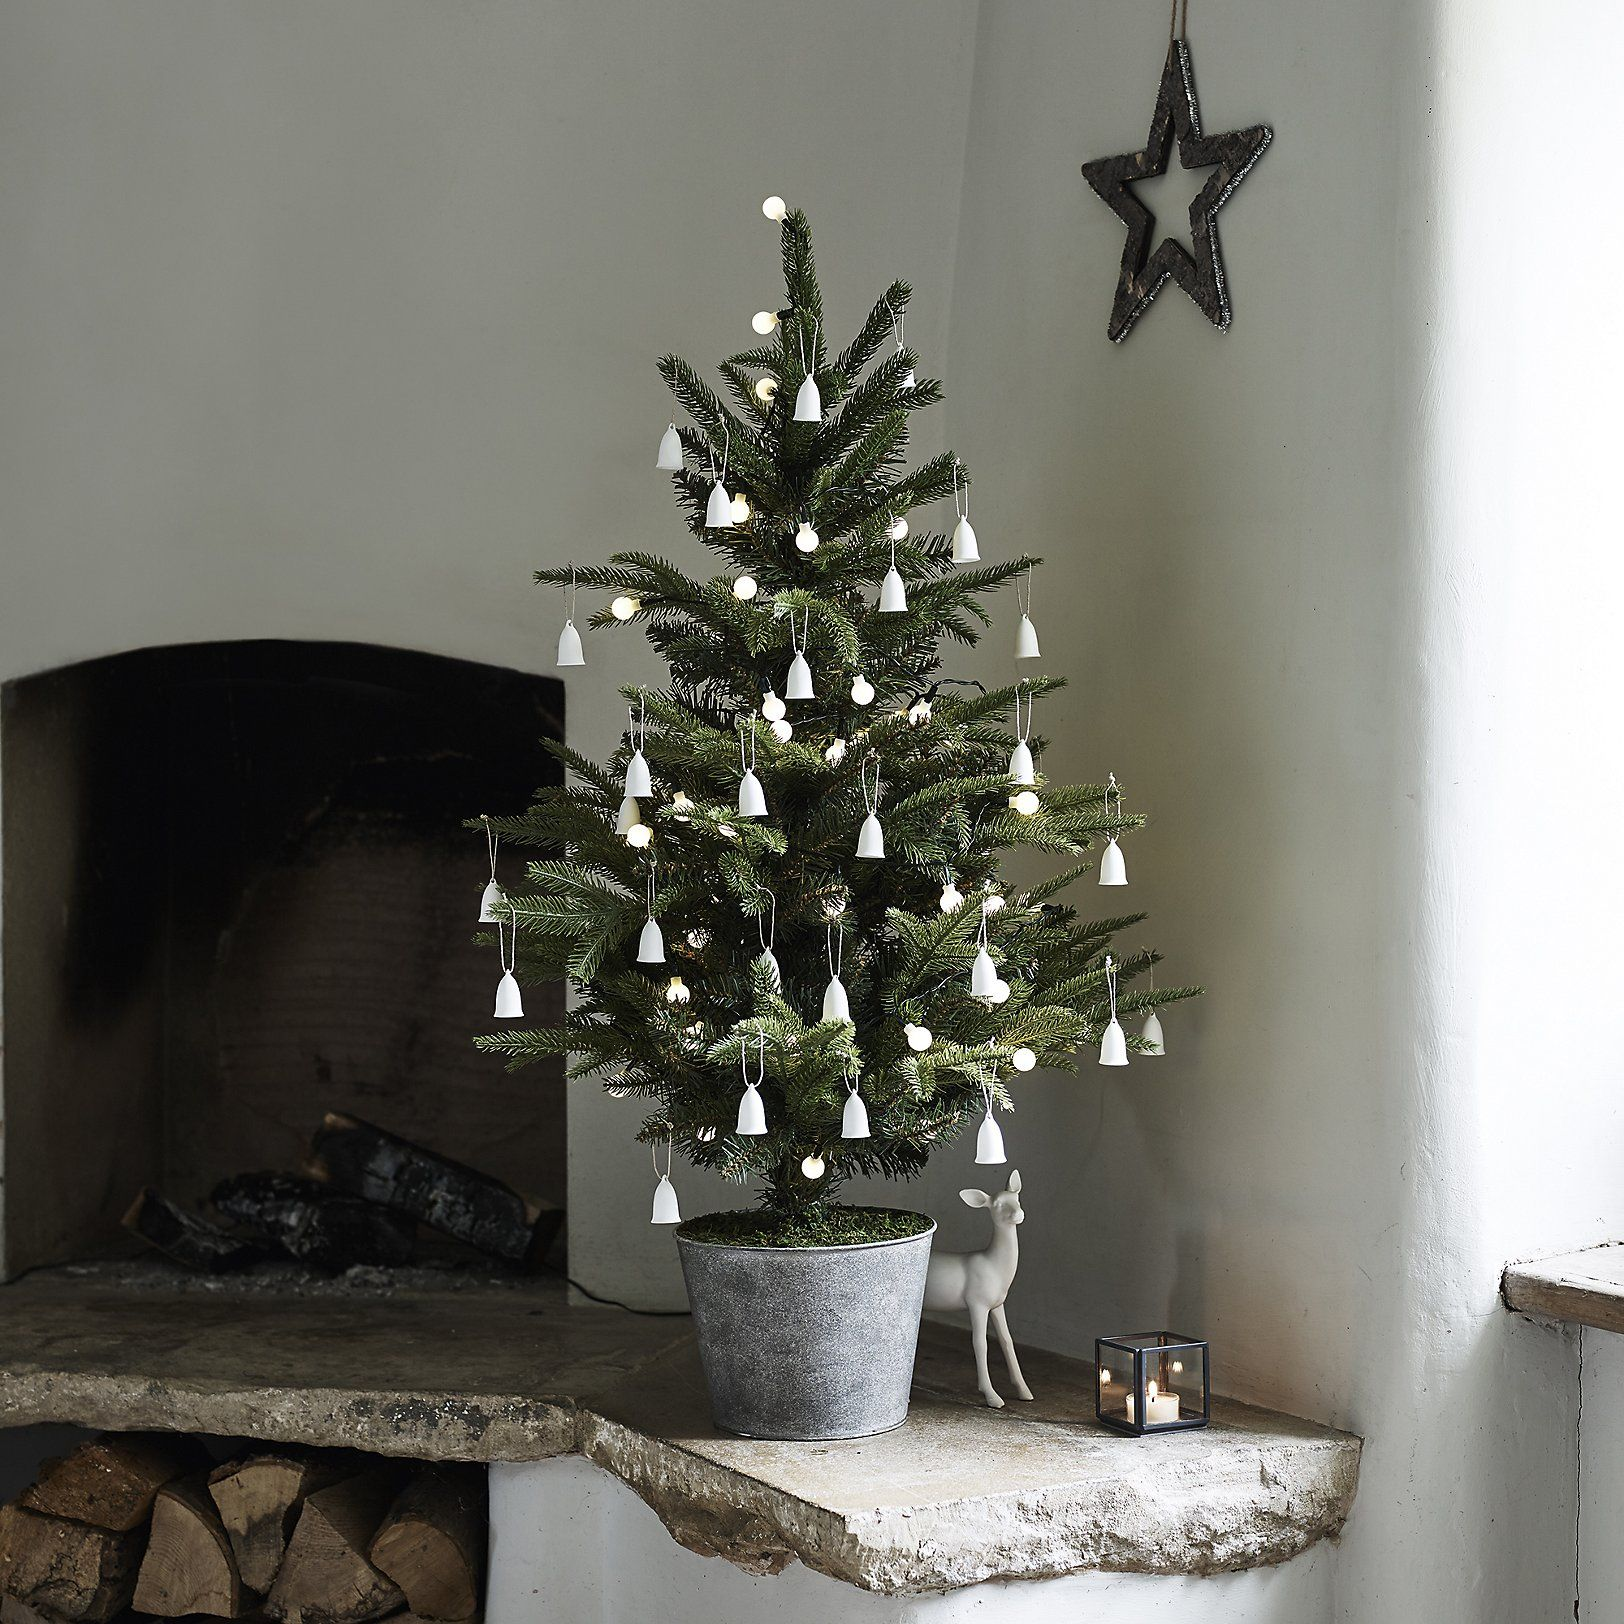 Potted Spruce Christmas Tree 3ft The White Company UK